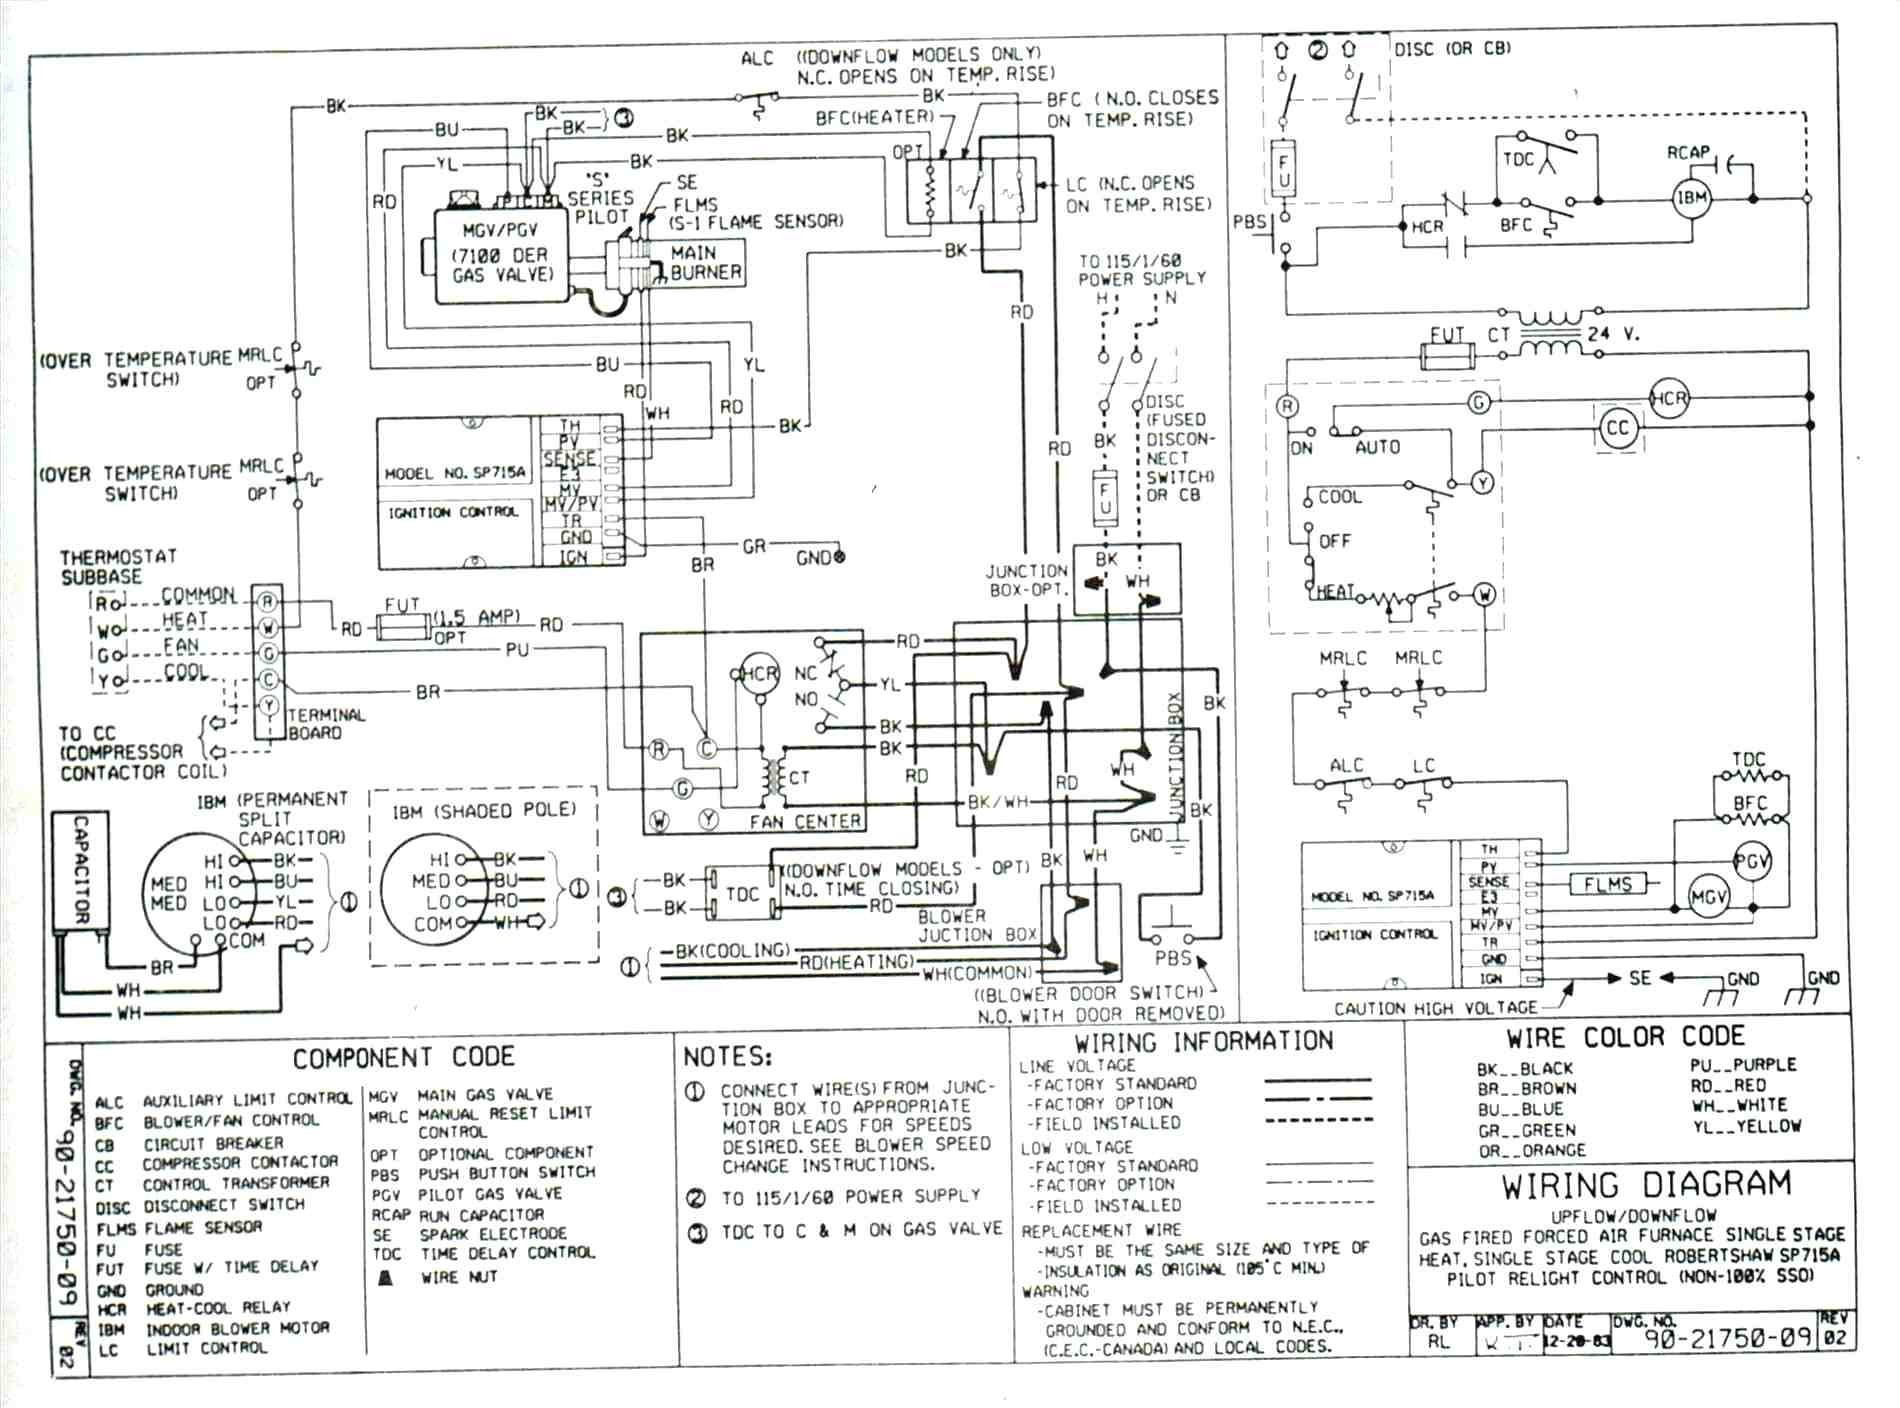 Goodman Hkr 15C Wiring Diagram Awesome Goodman Package Unit Wiring - Goodman Package Unit Wiring Diagram